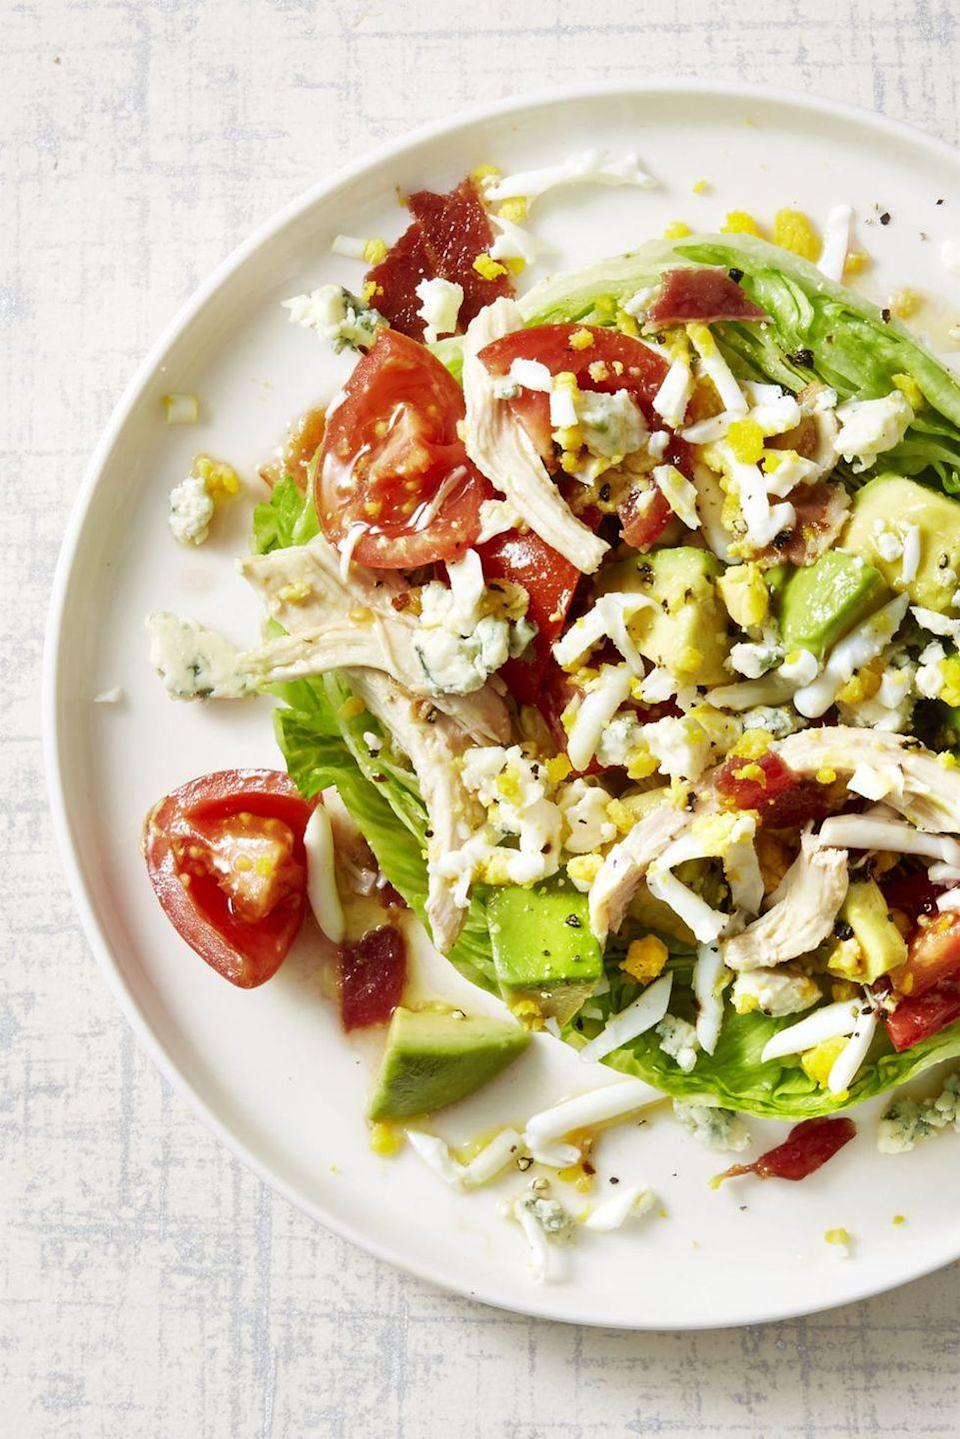 """<p>If you're craving some veggies post-turkey day, toss your leftovers into this 20-minute light and crisp dinner salad loaded with avocado and tomatoes. Don't forget the bacon; it makes this salad feel extra decadent.</p><p><em><a href=""""https://www.goodhousekeeping.com/food-recipes/easy/a45233/rotisserie-chicken-cobb-salad-recipe/"""" rel=""""nofollow noopener"""" target=""""_blank"""" data-ylk=""""slk:Get the recipe for Turkey Cobb Salad »"""" class=""""link rapid-noclick-resp"""">Get the recipe for Turkey Cobb Salad »</a></em></p>"""